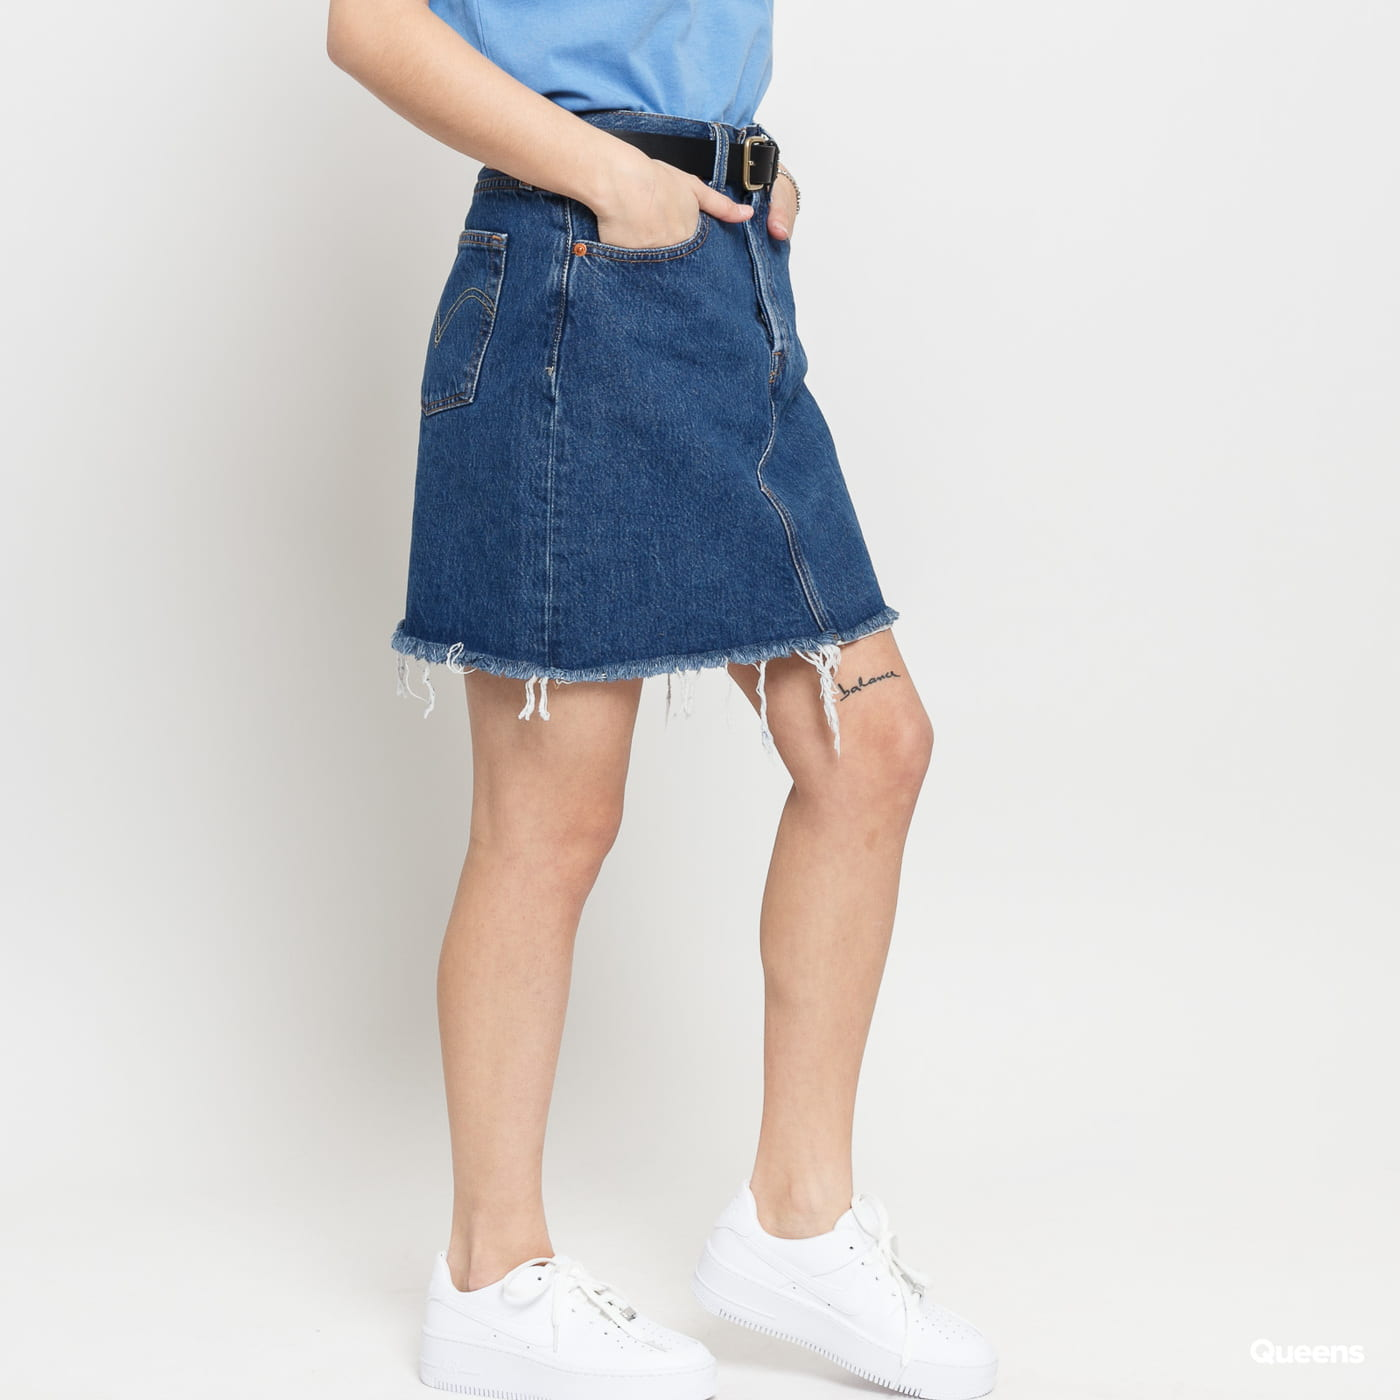 Levi's ® HR Decon Iconic BF Skirt blue